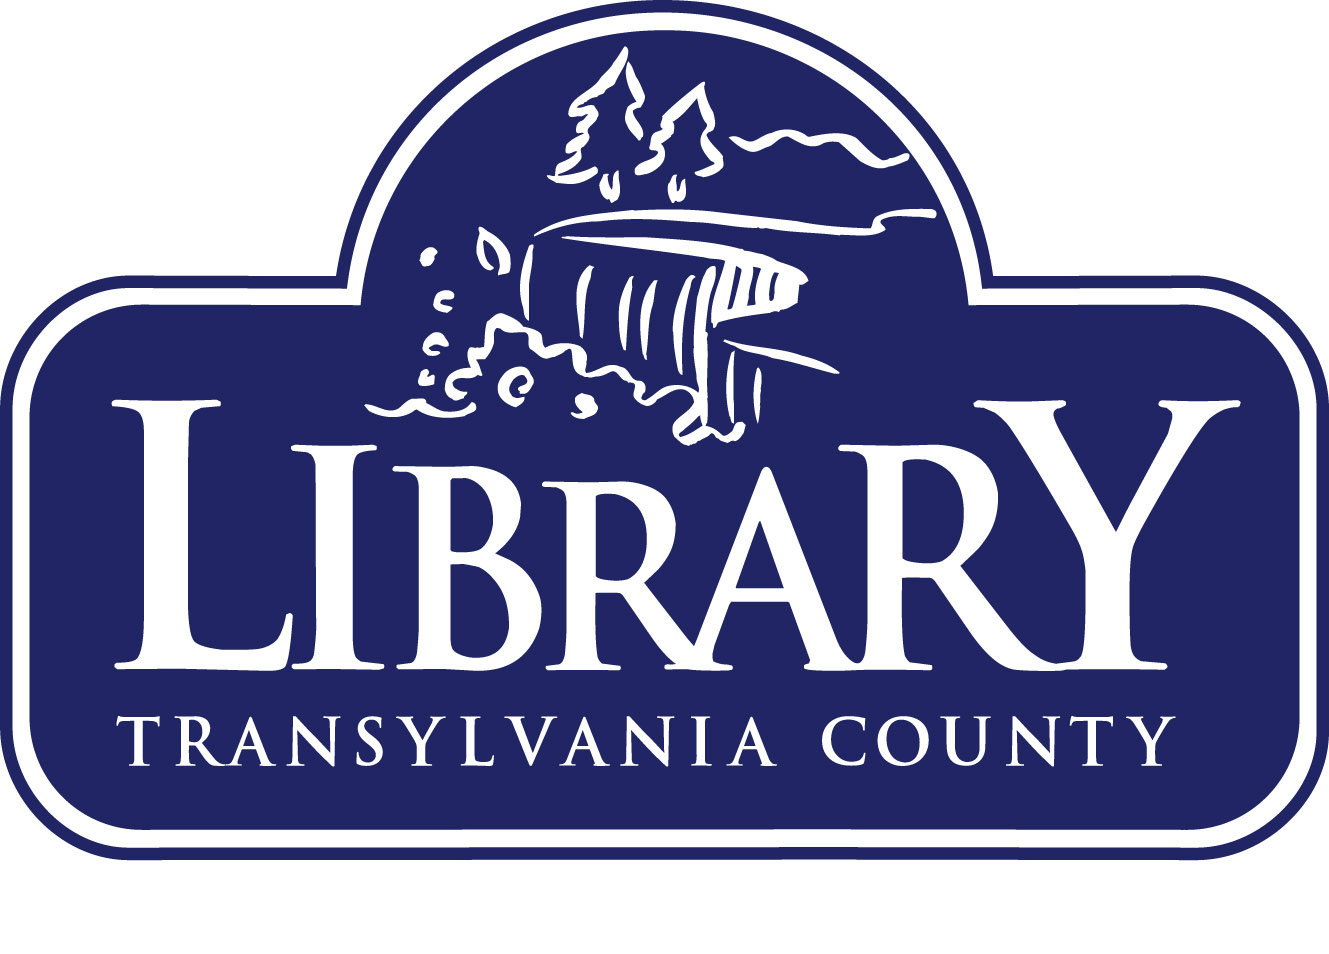 TC - LIBRARY LOGO 1.jpg